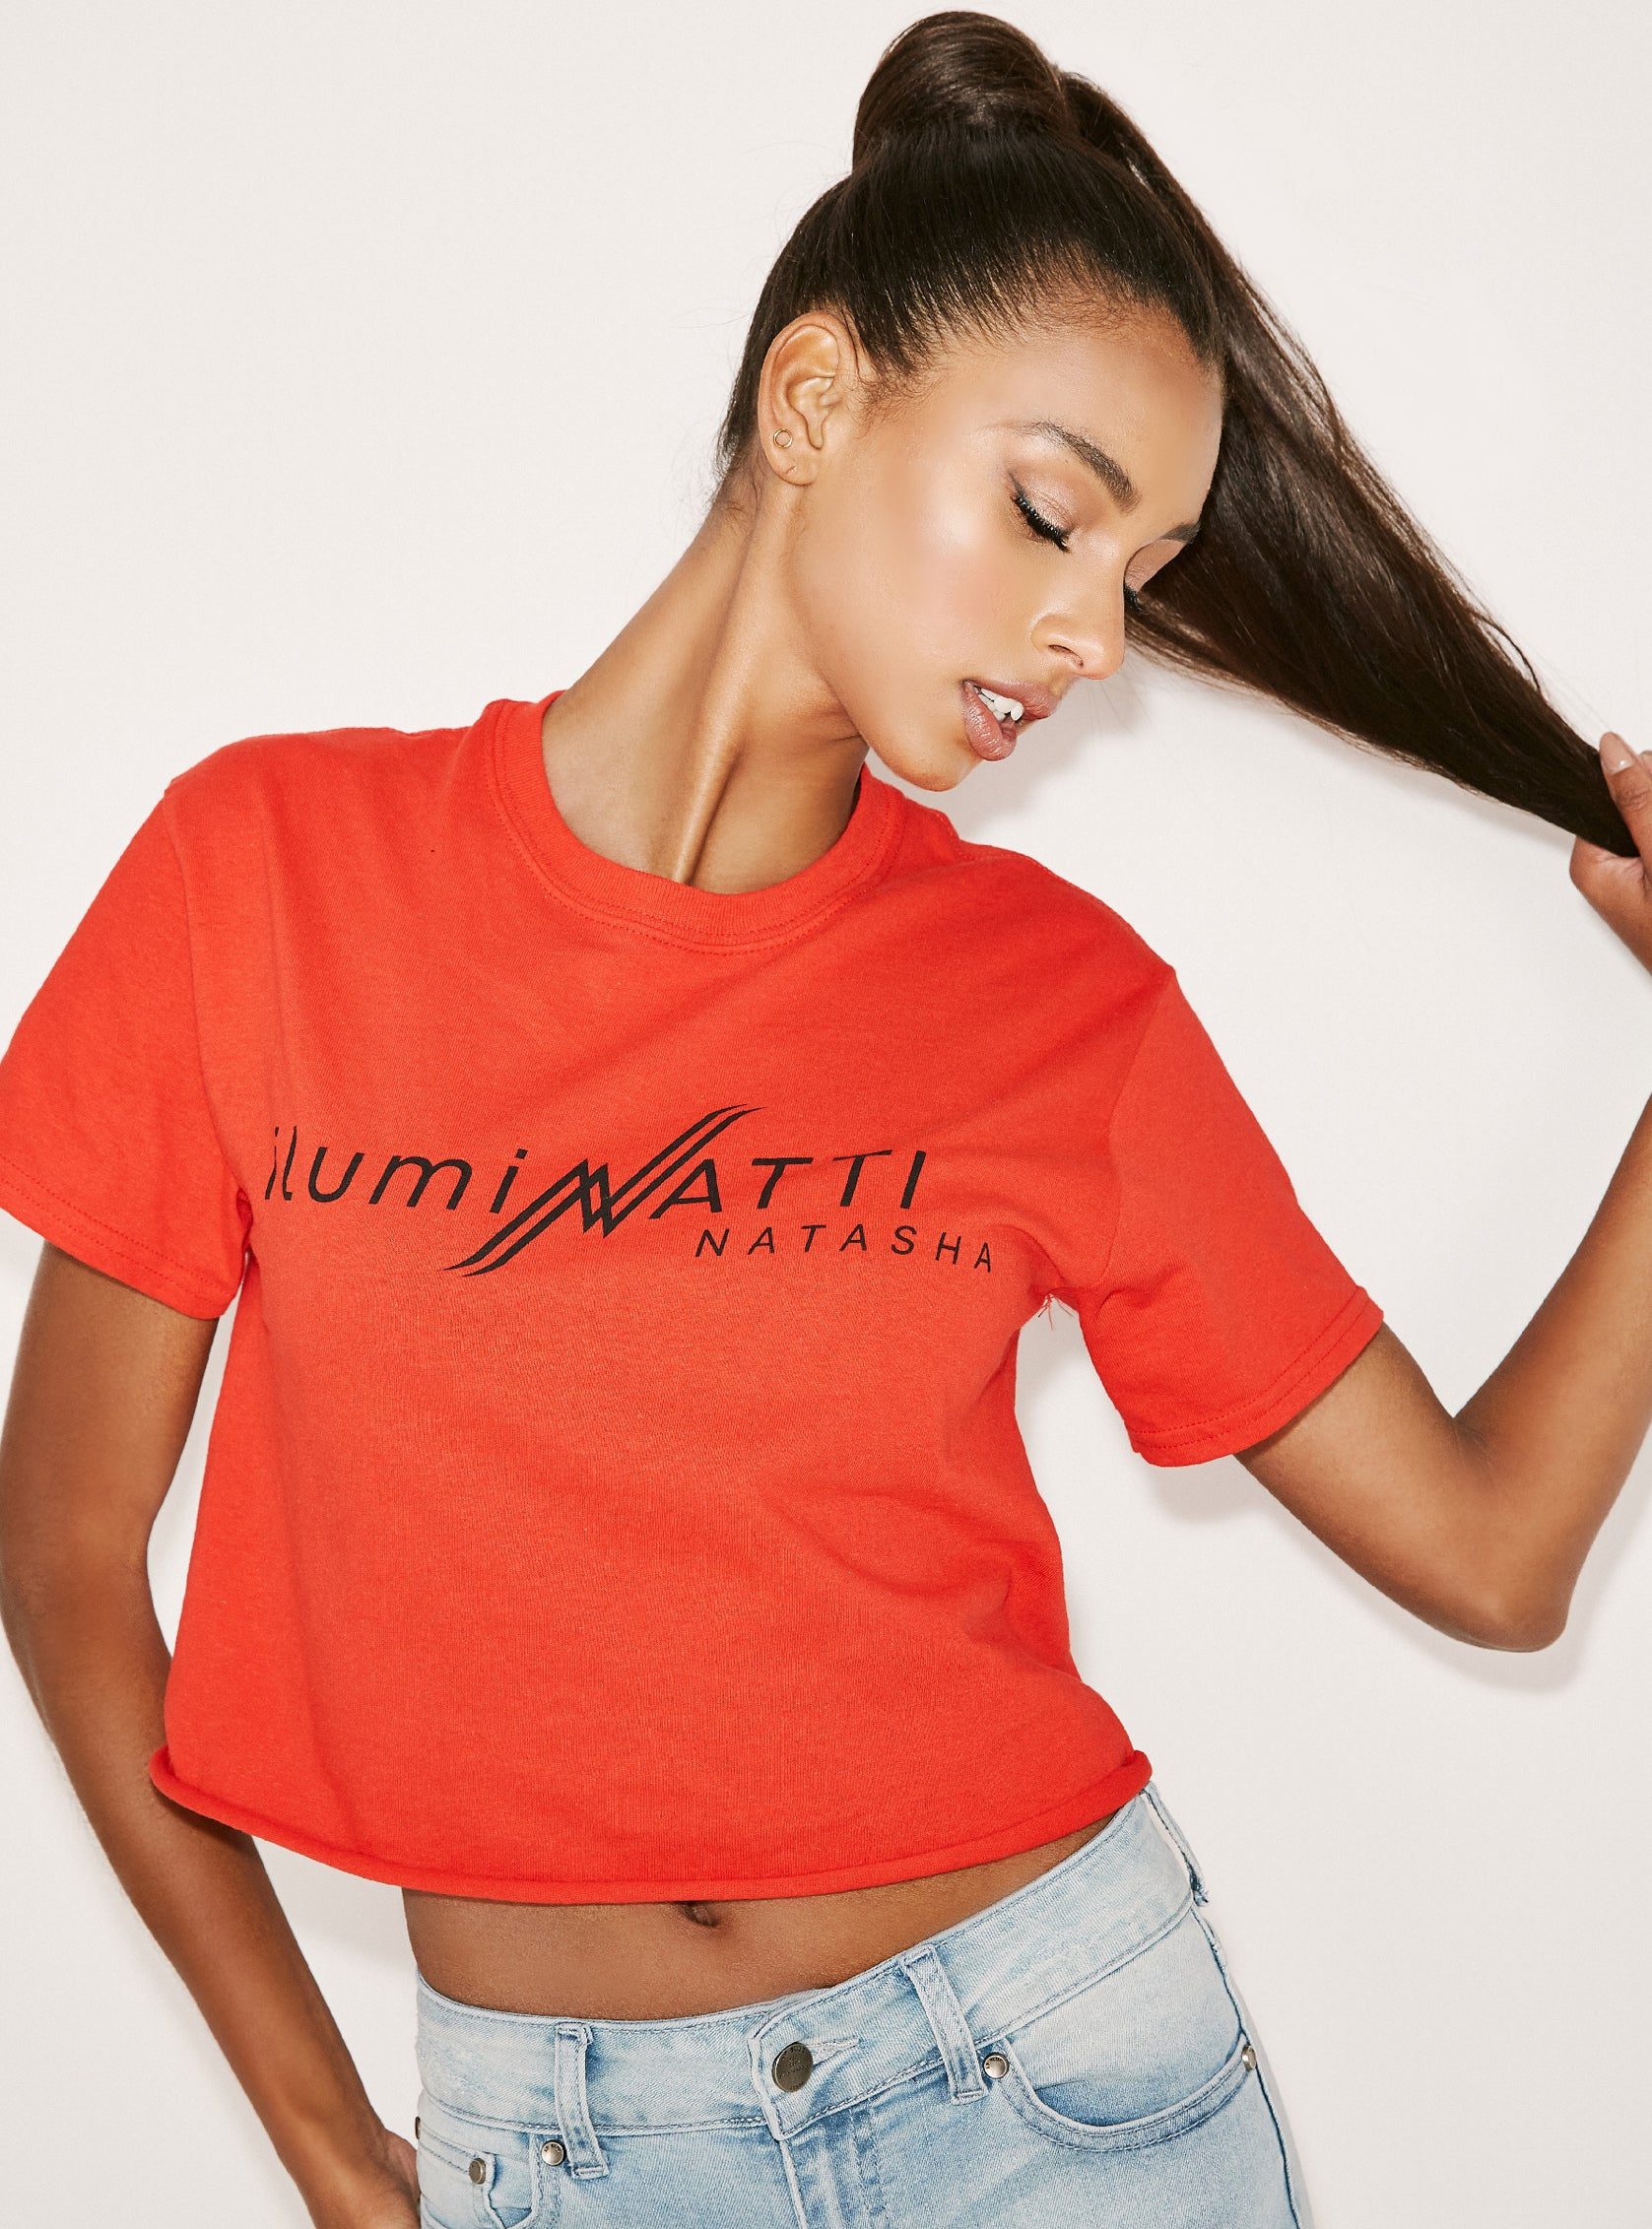 ilumiNATTI Crop Top - Red